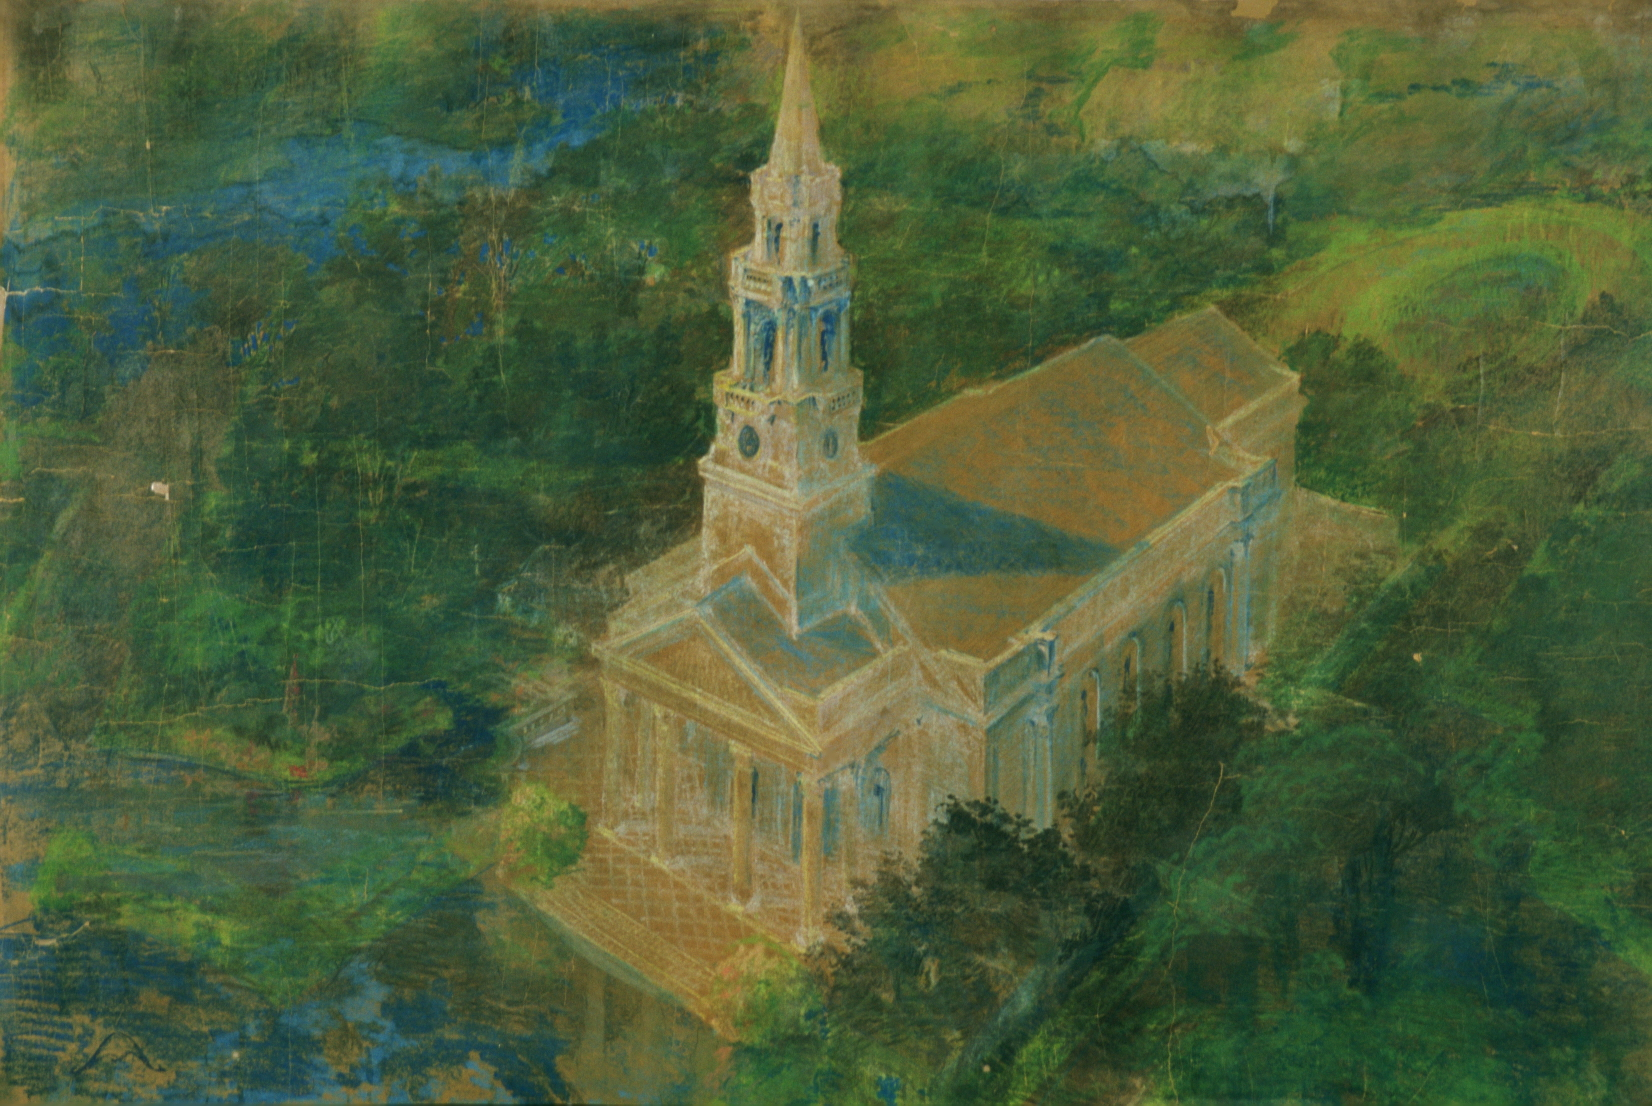 Maybeck & White, Loch Lin Site, Chapel and Open-Air Theatre, 1926, Pastel, graphite on kraft paper, 42 x 73 in.